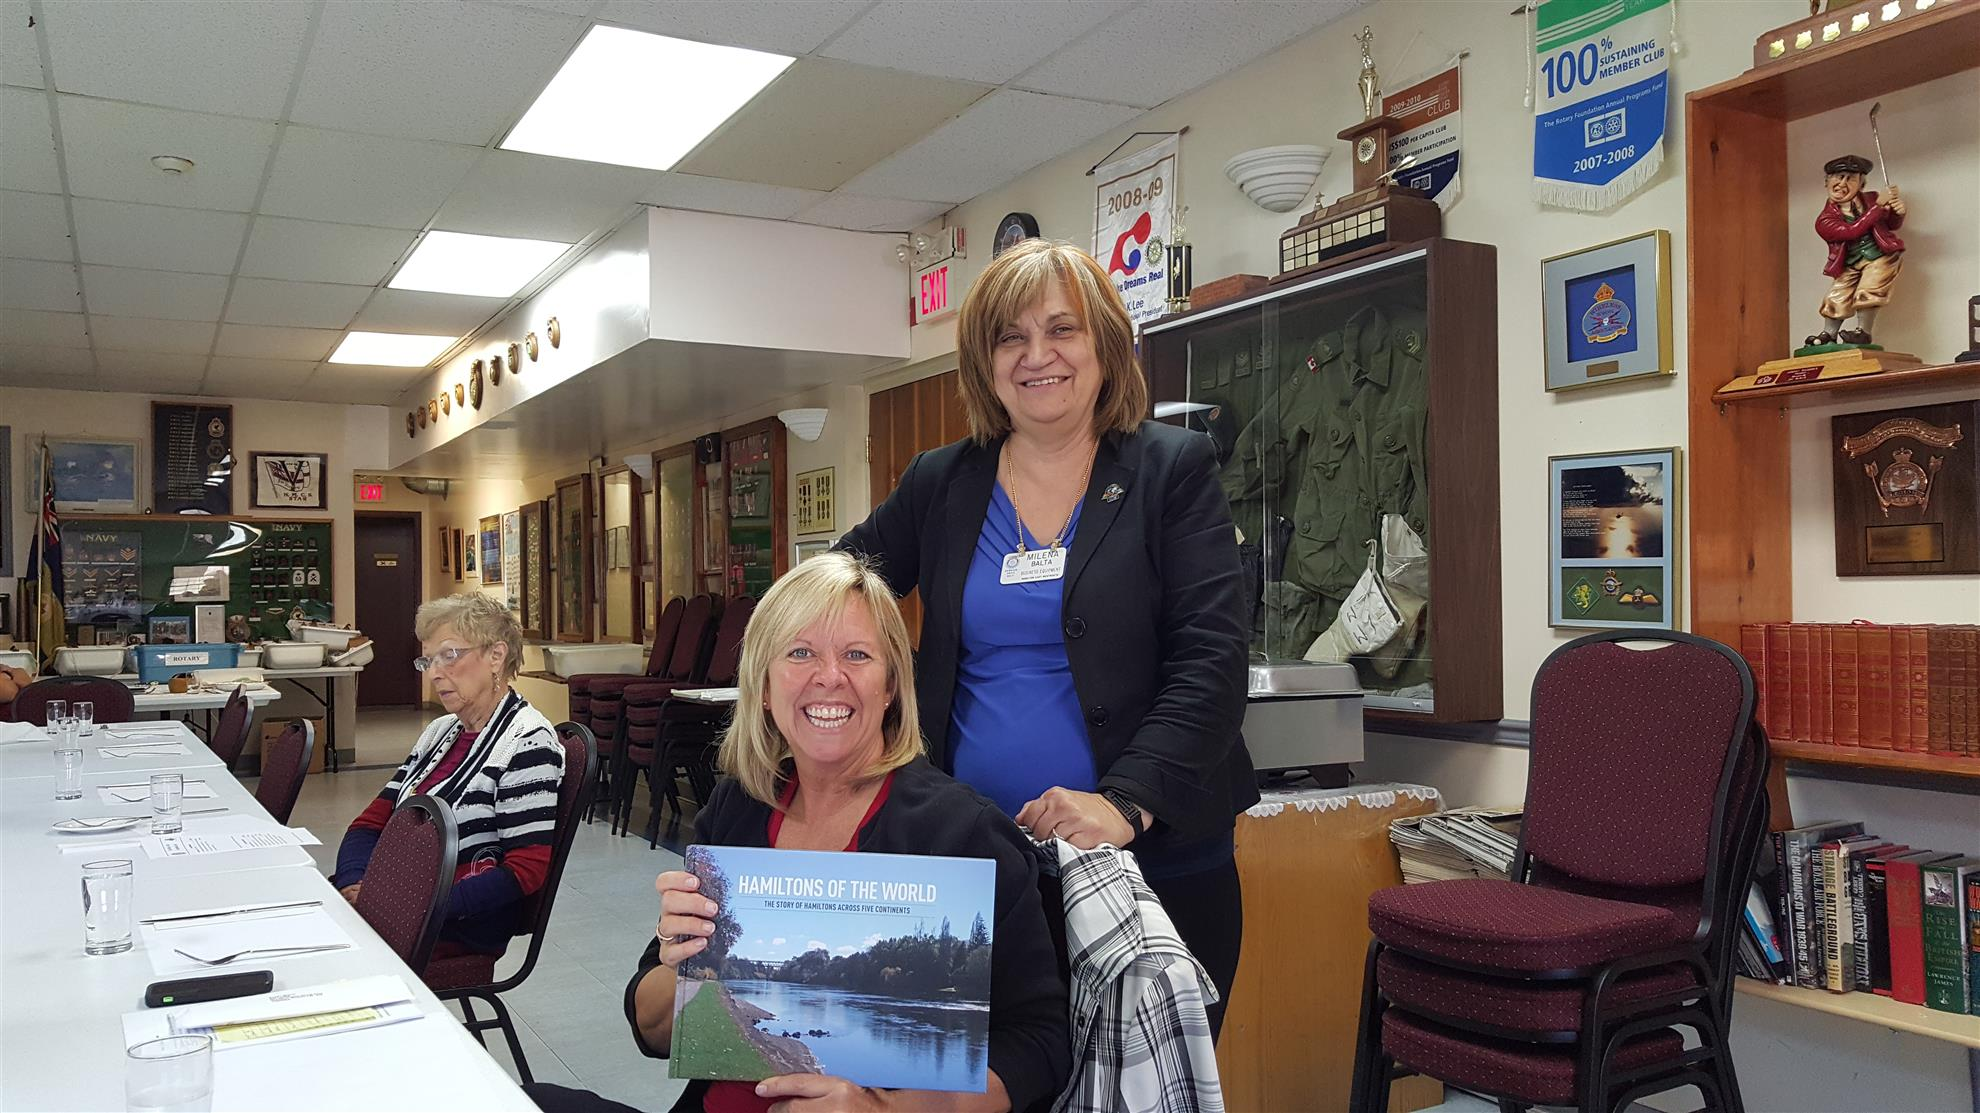 Rotarian Milena Balta presents Susan Morris with a personalized copy of the 'Hamiltons of the World' Rotary Book.